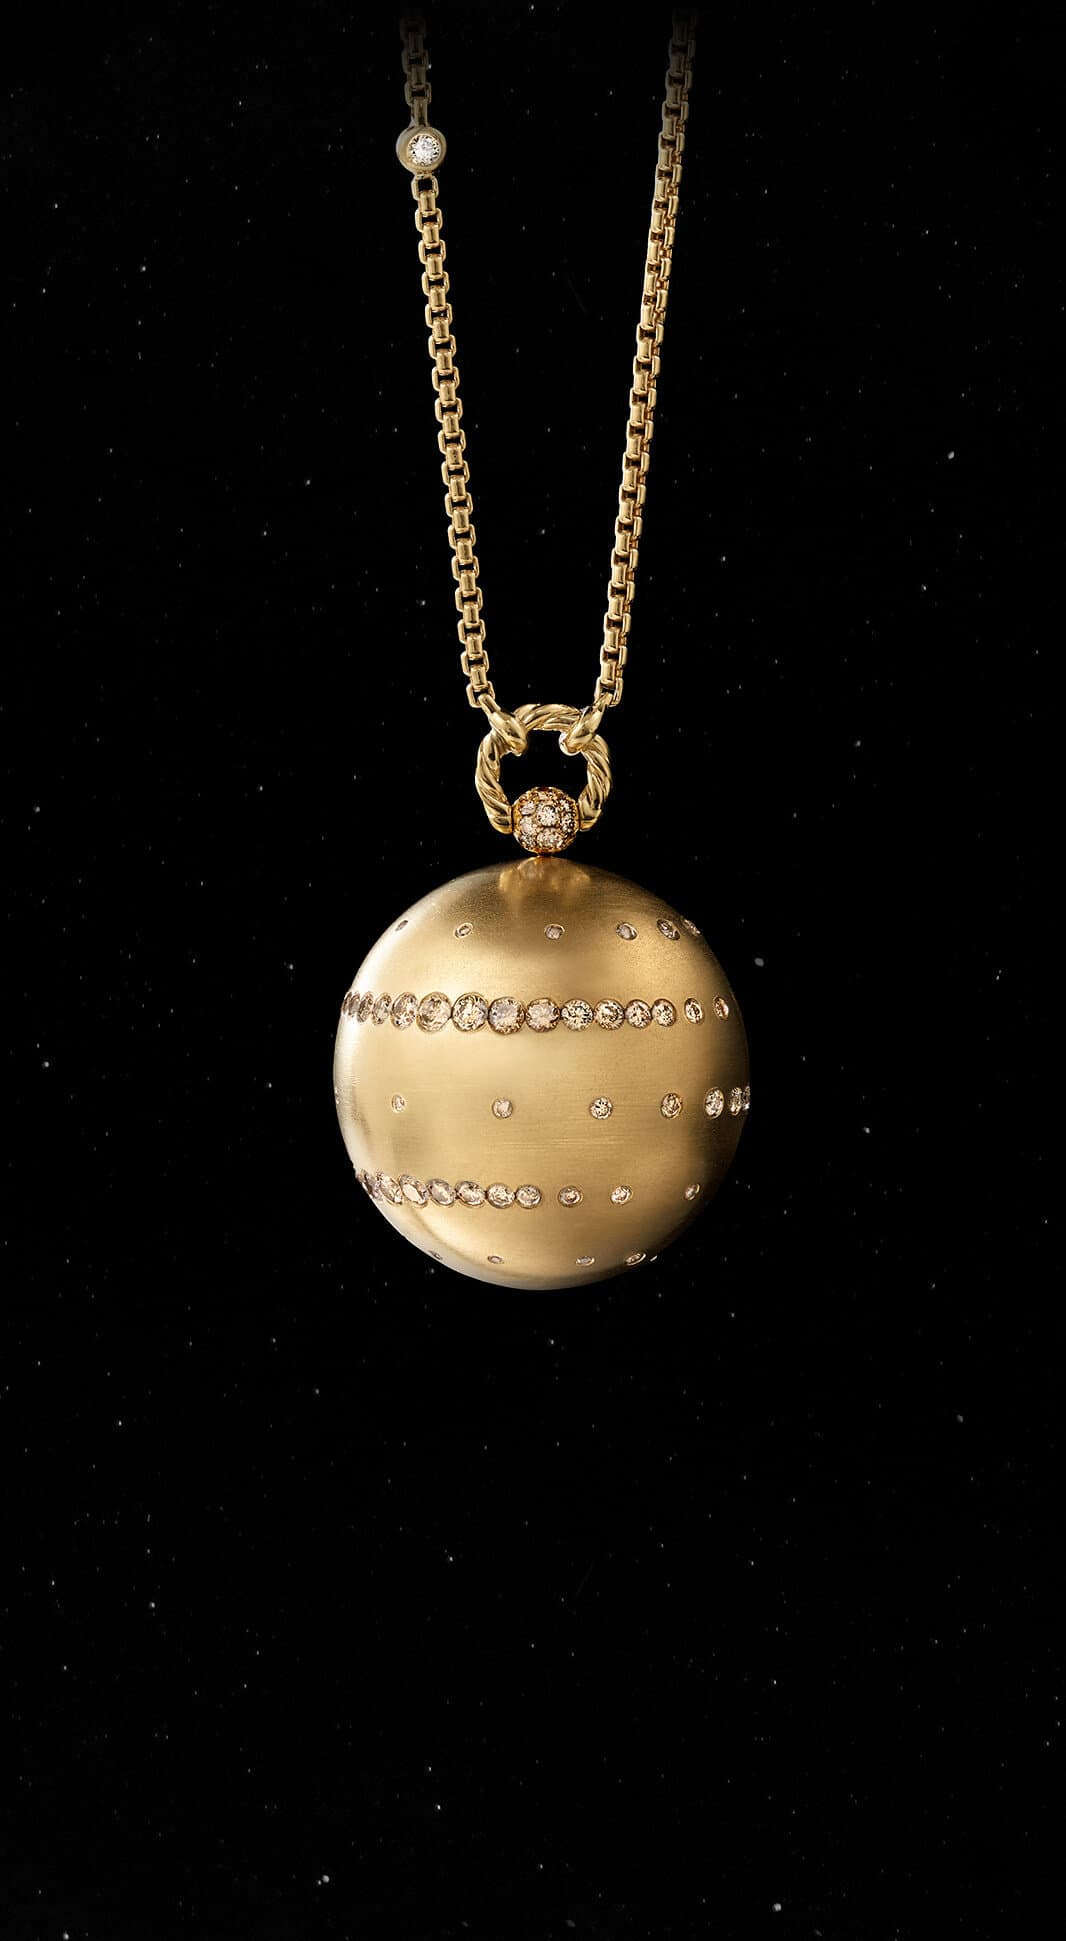 A color photo shows the David Yurman Solari Planet Jupiter pendant necklace in front of a starry night sky. The pendant is crafted from 18K yellow gold with cognac diamonds.